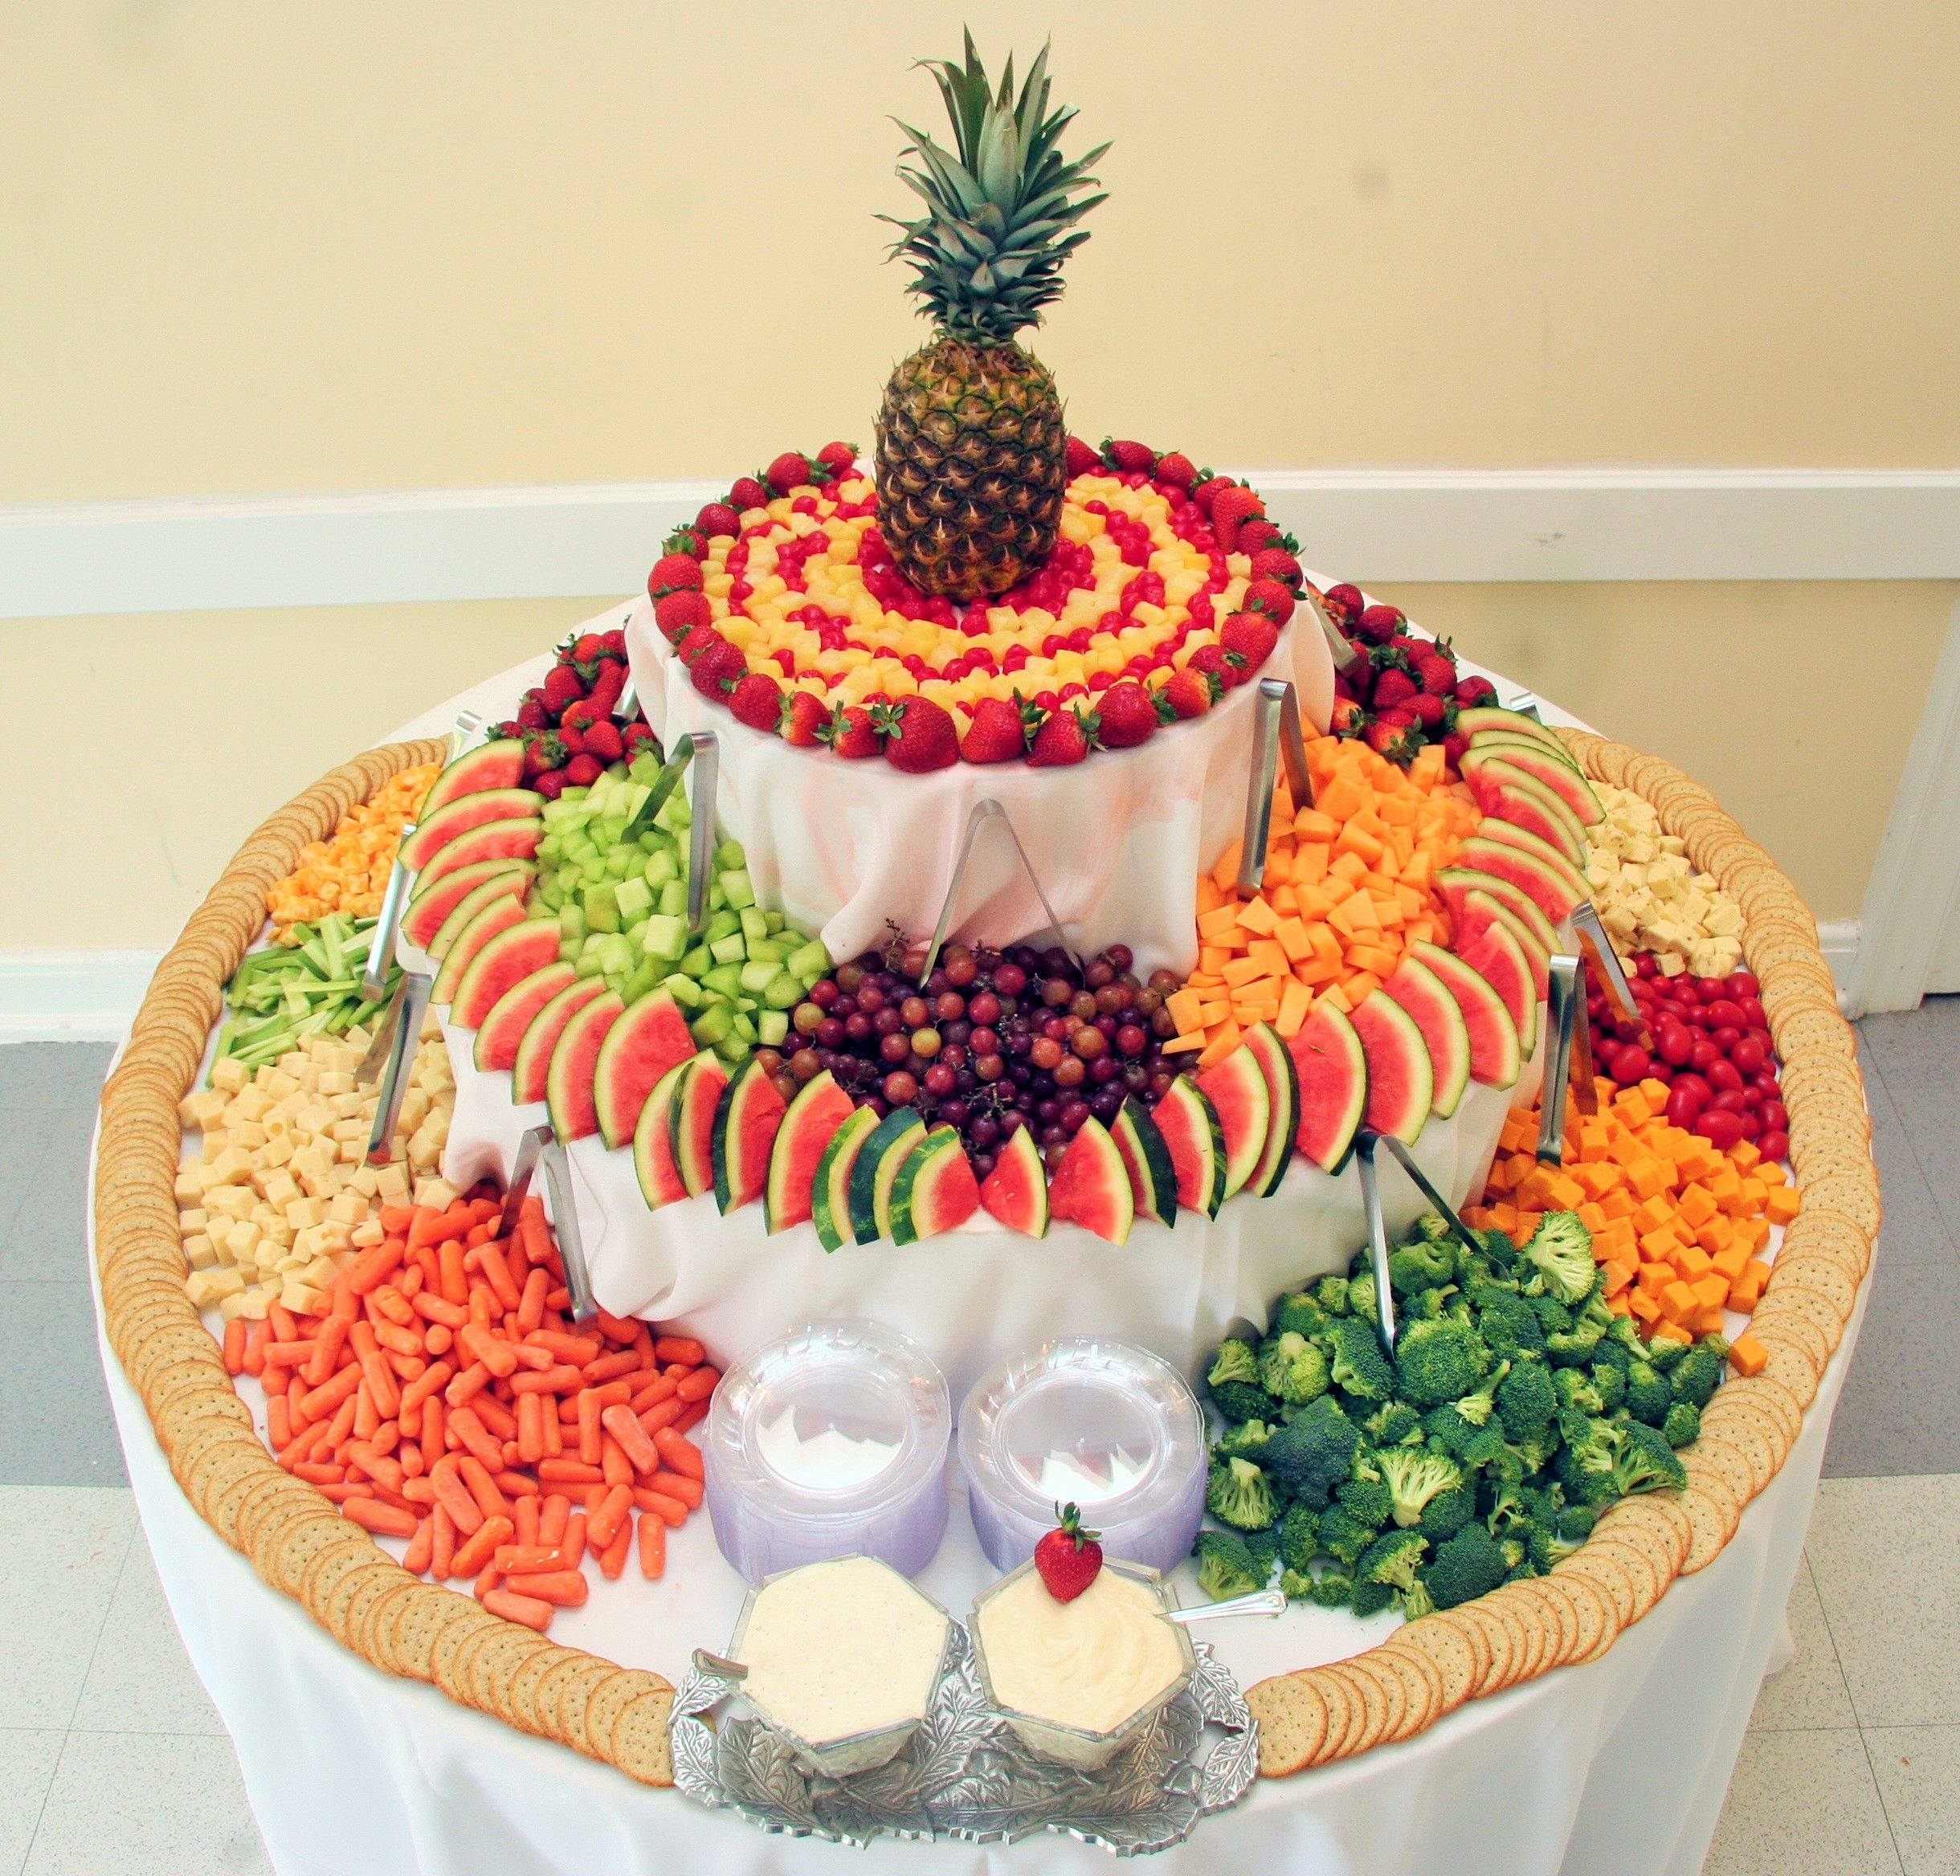 Homemade Wedding Food: Our Stunning Fruit, Cheese And Vegetable Tower With Dips